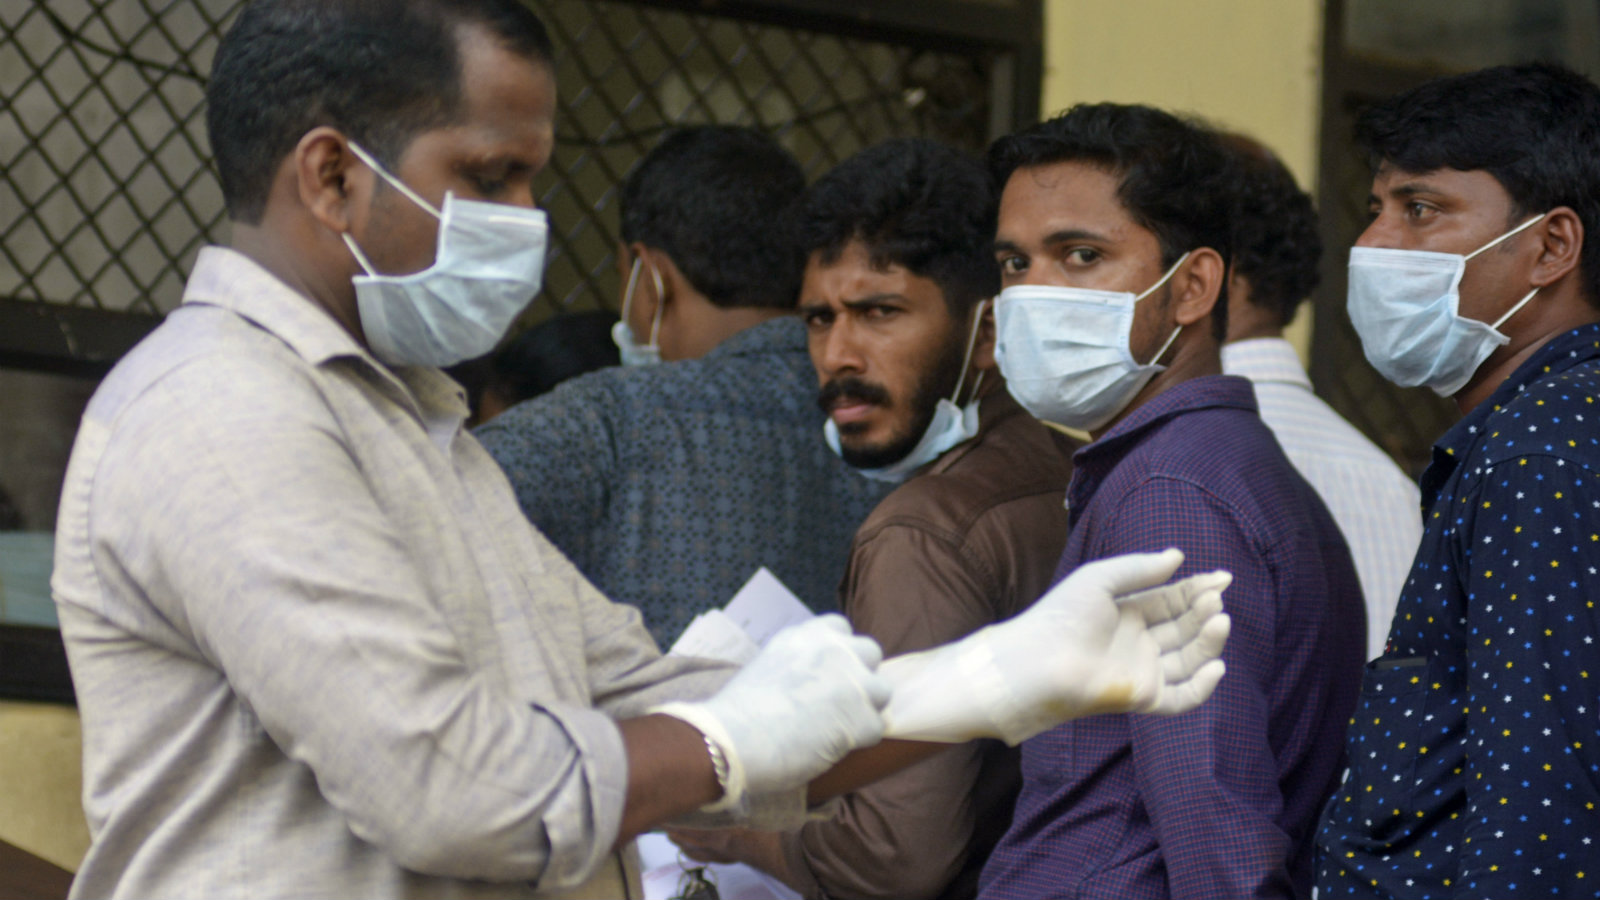 Indians standing in a queue outside a hospital wear masks as a precautionary measure against the Nipah virus at the Government Medical College hospital in Kozhikode, in the southern Indian state of Kerala, Monday, May 21, 2018. The deadly virus has killed at least three people in southern India, officials said Monday, with medical teams dispatched to the area amid reports that up to six other people could have died from the disease and others are ill.